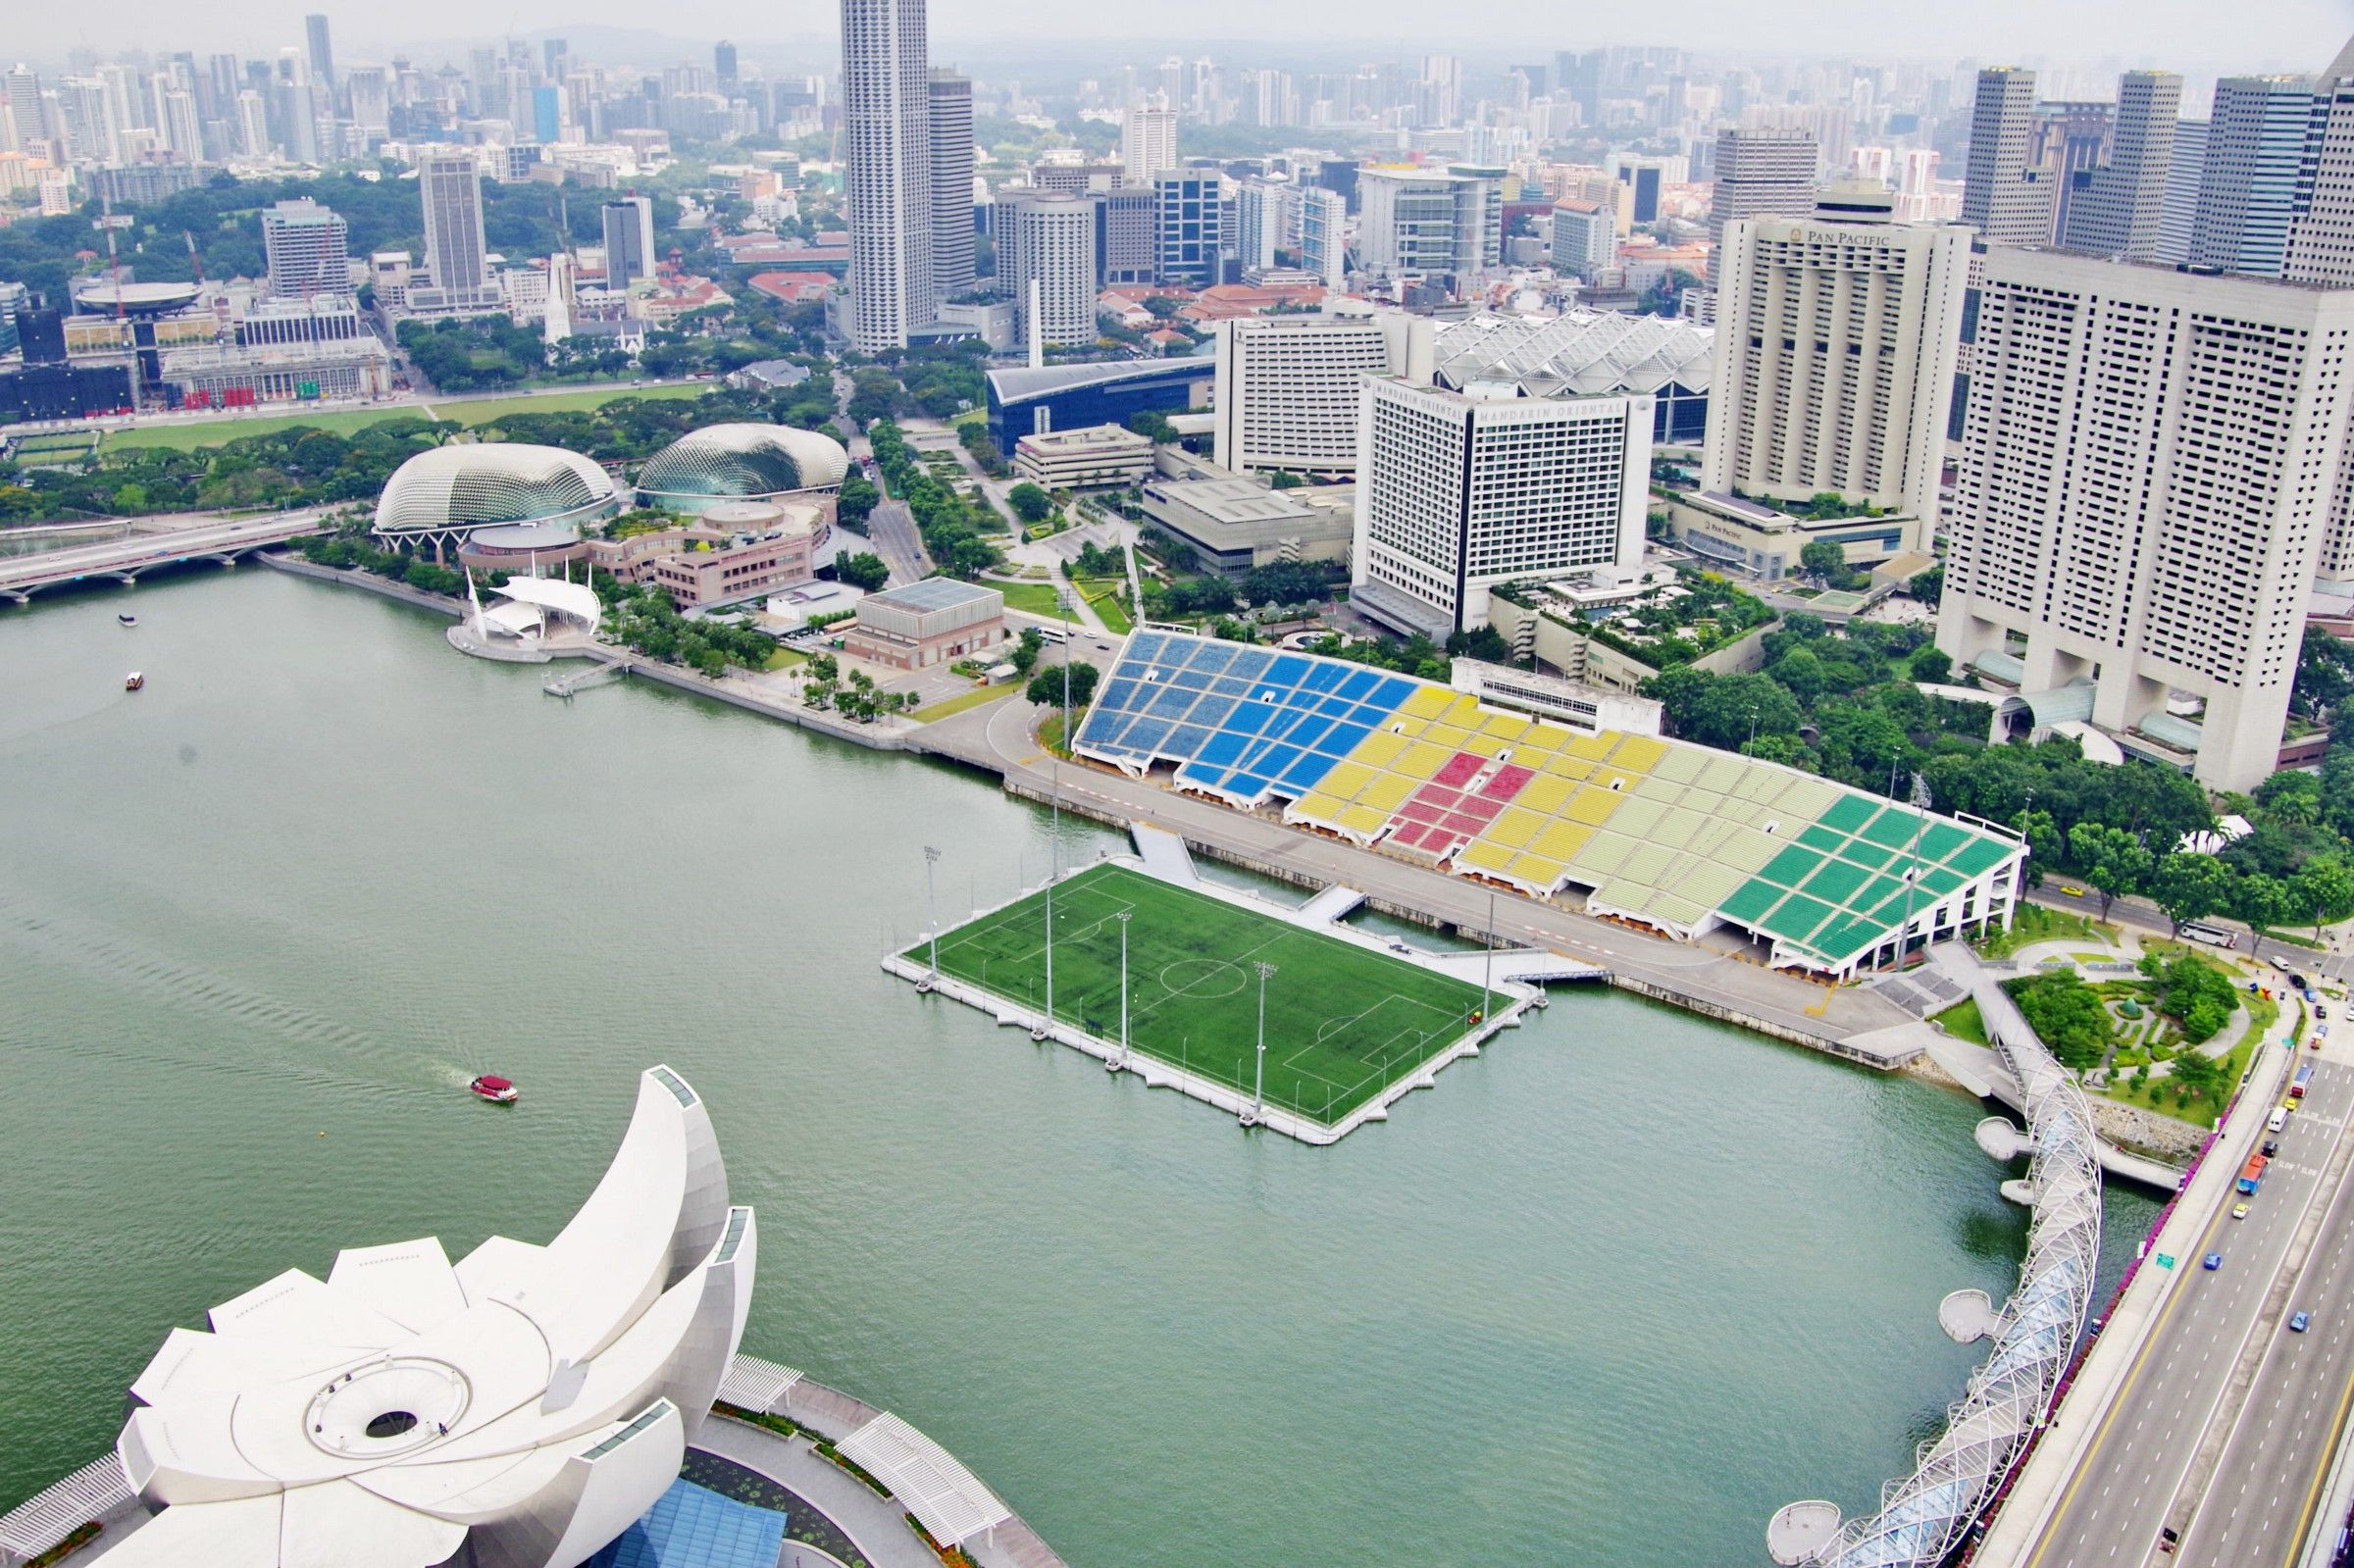 25 Turfs You Need To Play On Before You Die Find Your Soccer Medium Best Places In Singapore Asia Travel Singapore